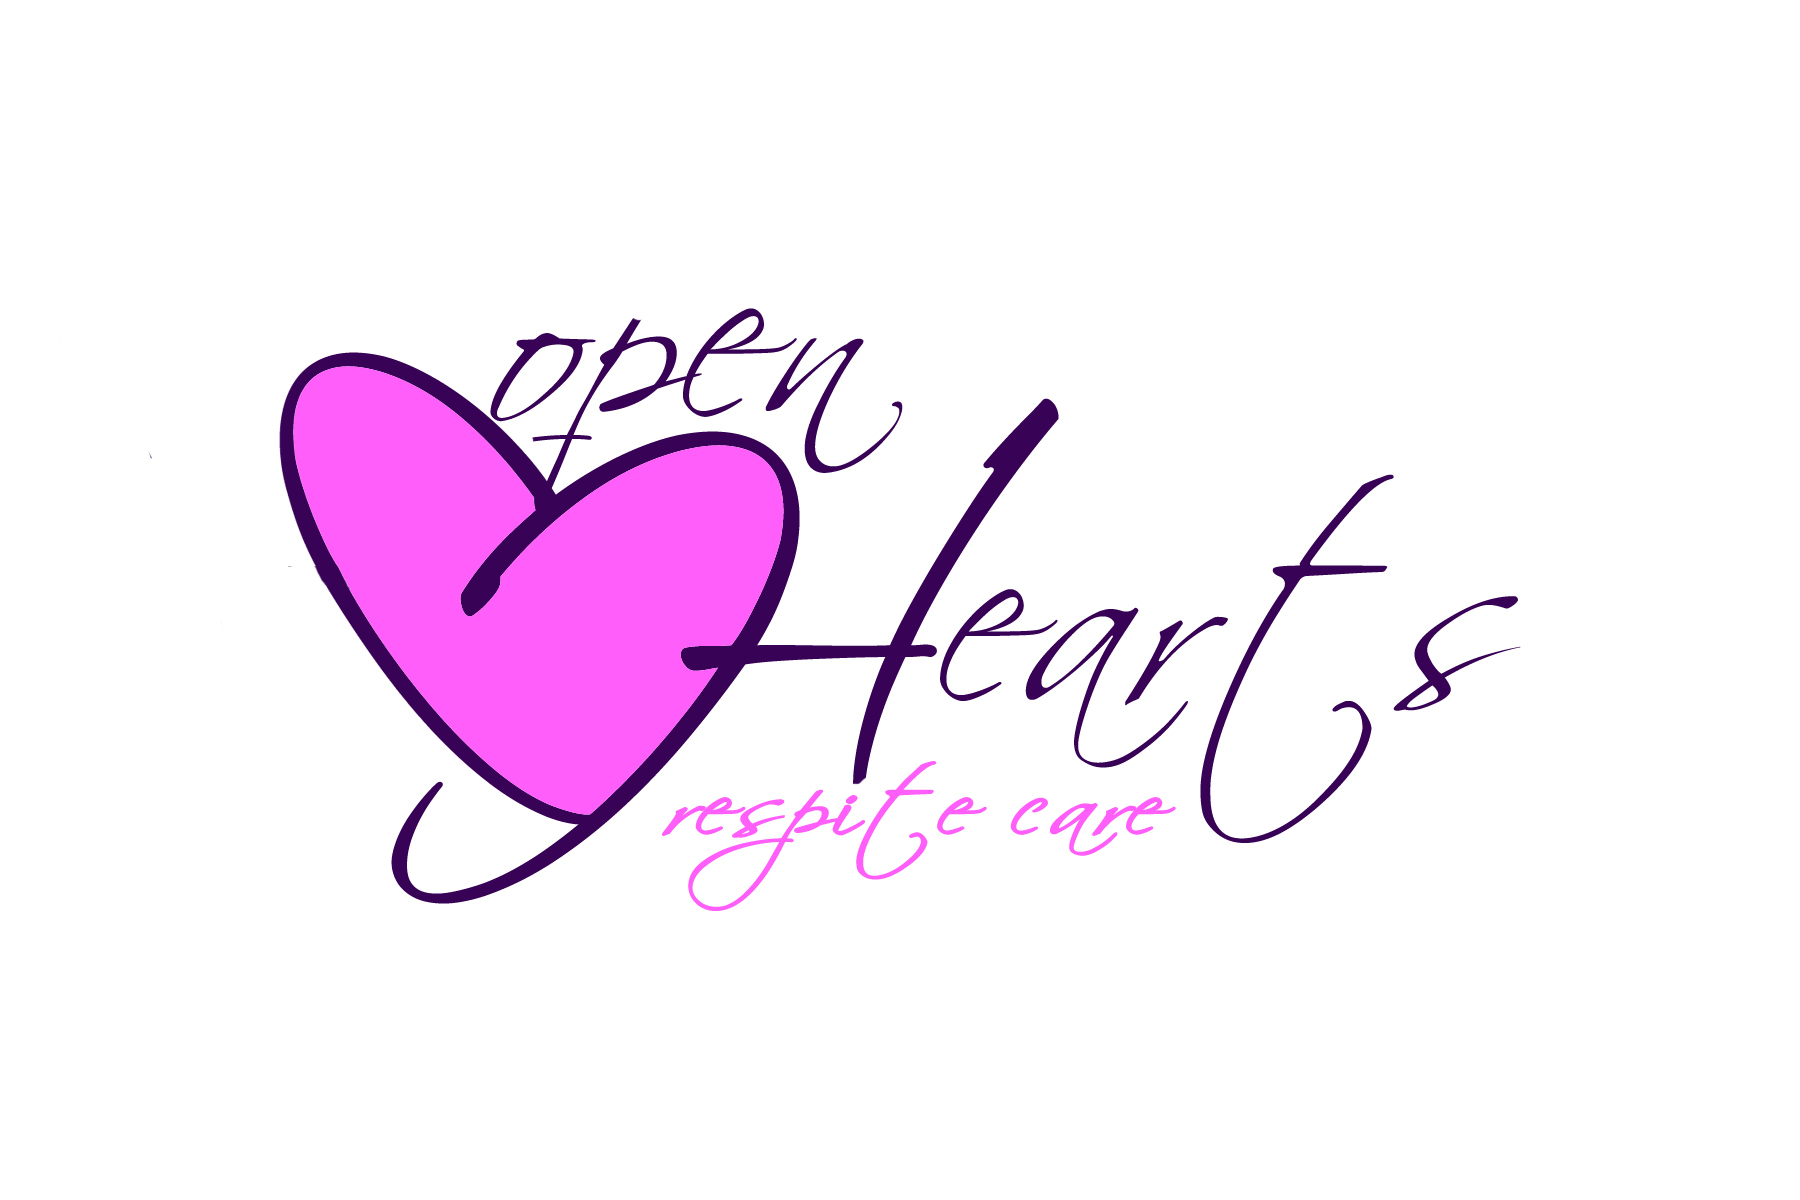 Heart wallpaper picture fannone. Black white clipart of open hearts